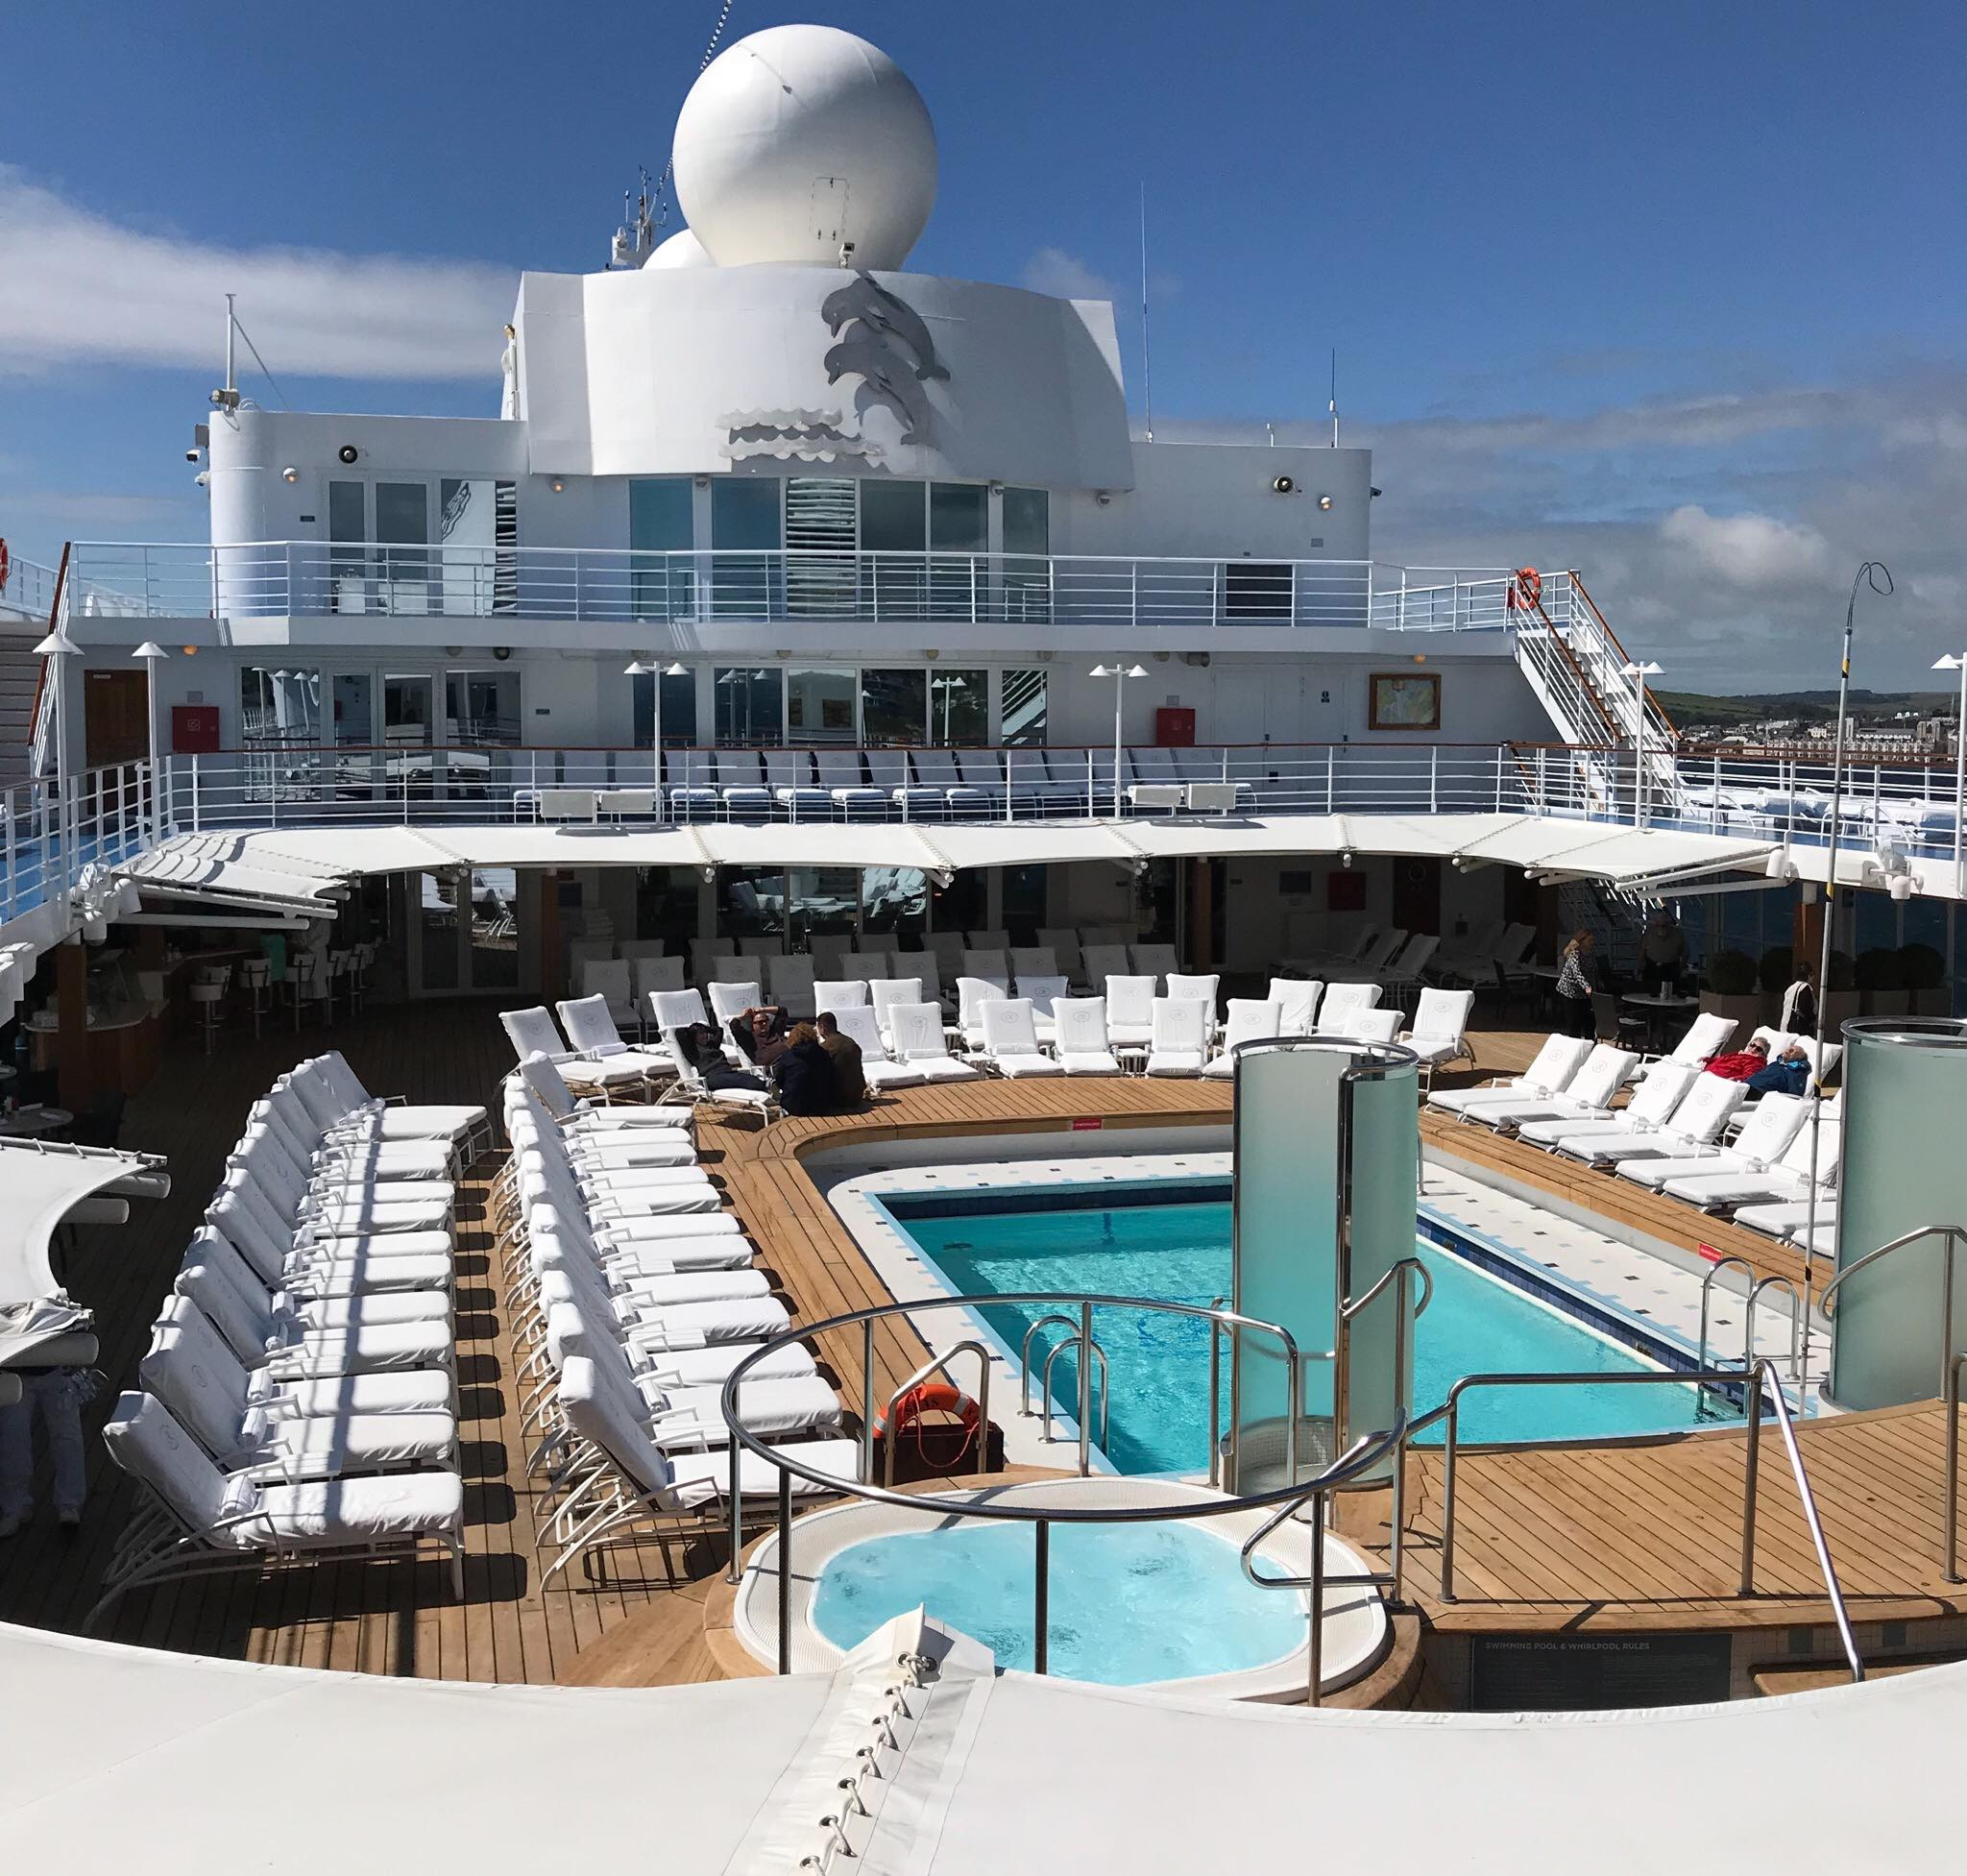 Maiden voyage of the Seven Seas Navigator Cruise Ship visiting the Isle of Man